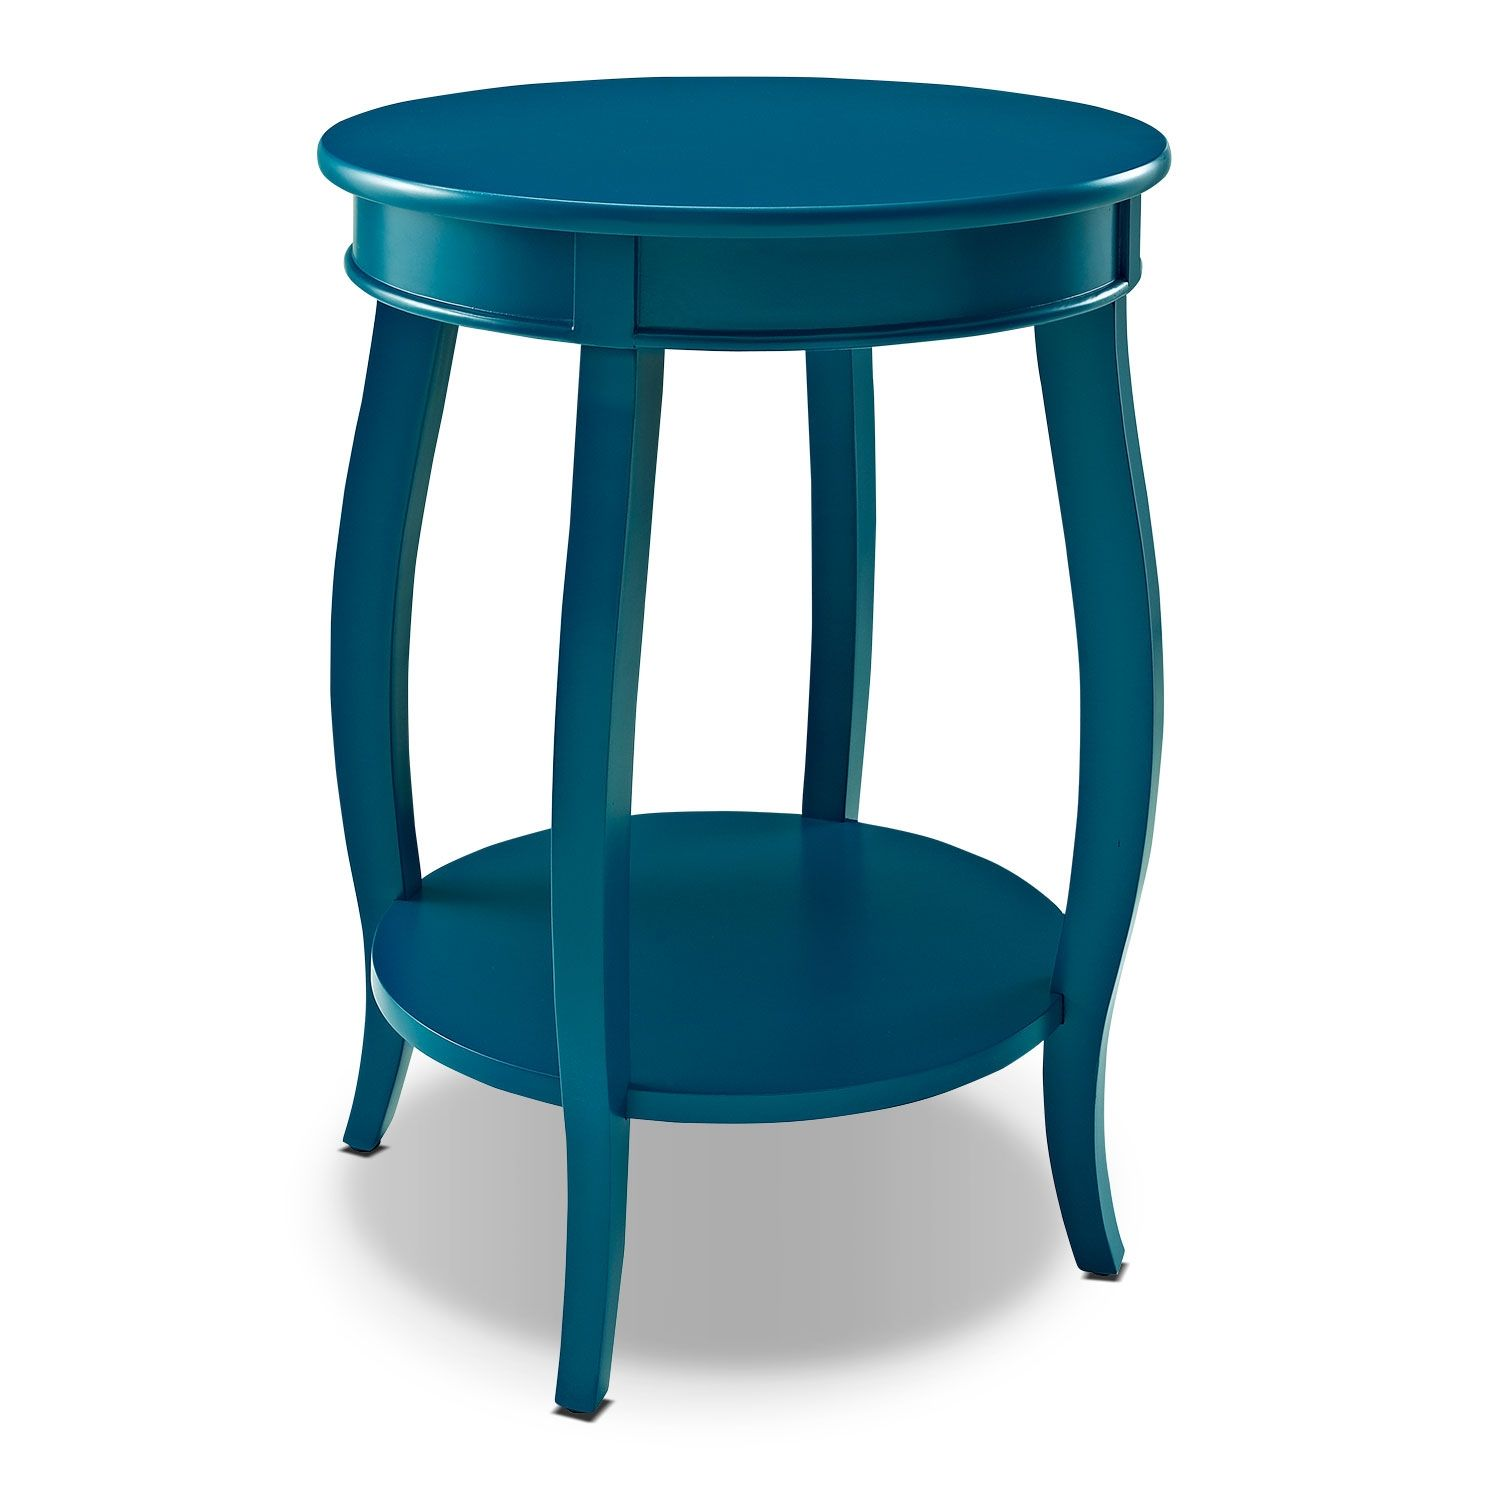 Accent And Occasional Furniture Sydney Accent Table Teal With